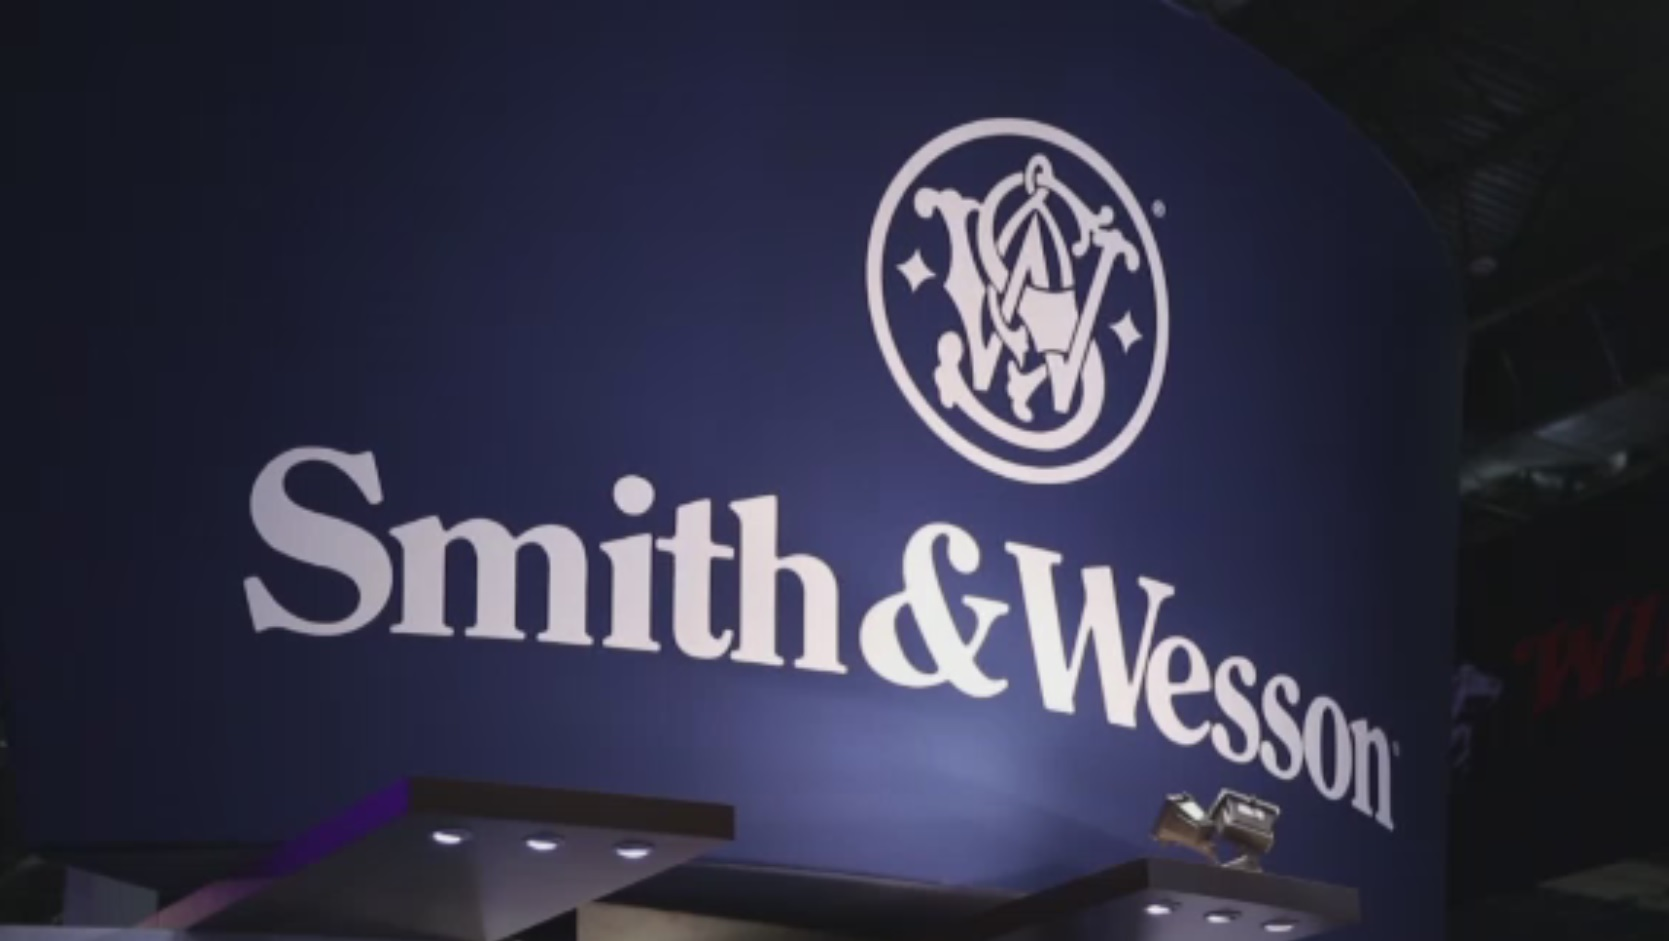 Smith & Wesson Gun Sales Up_412430